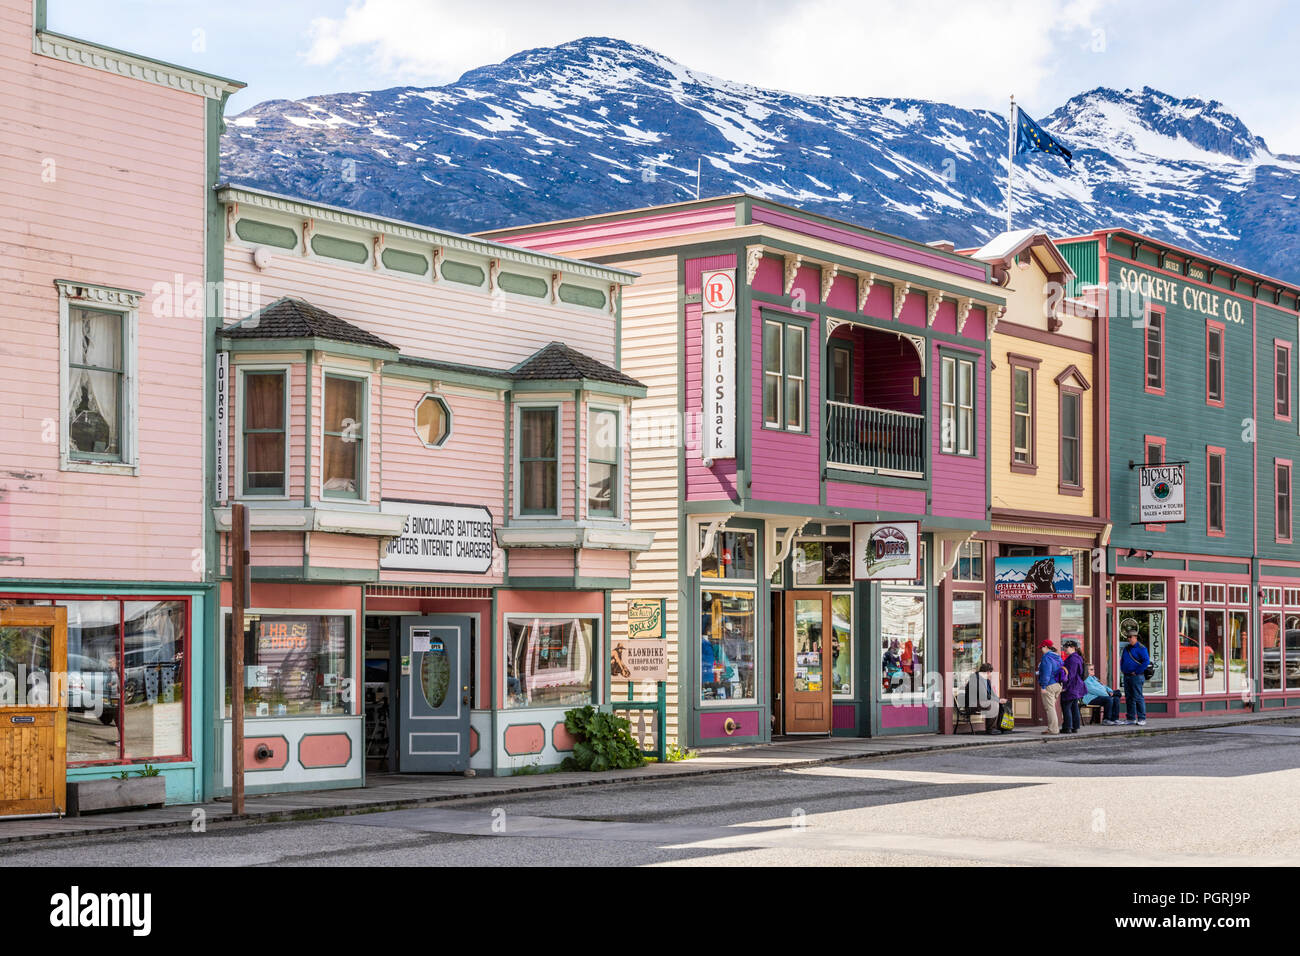 Colourful timber buildings in the main street in Skagway, Alaska USA - Stock Image